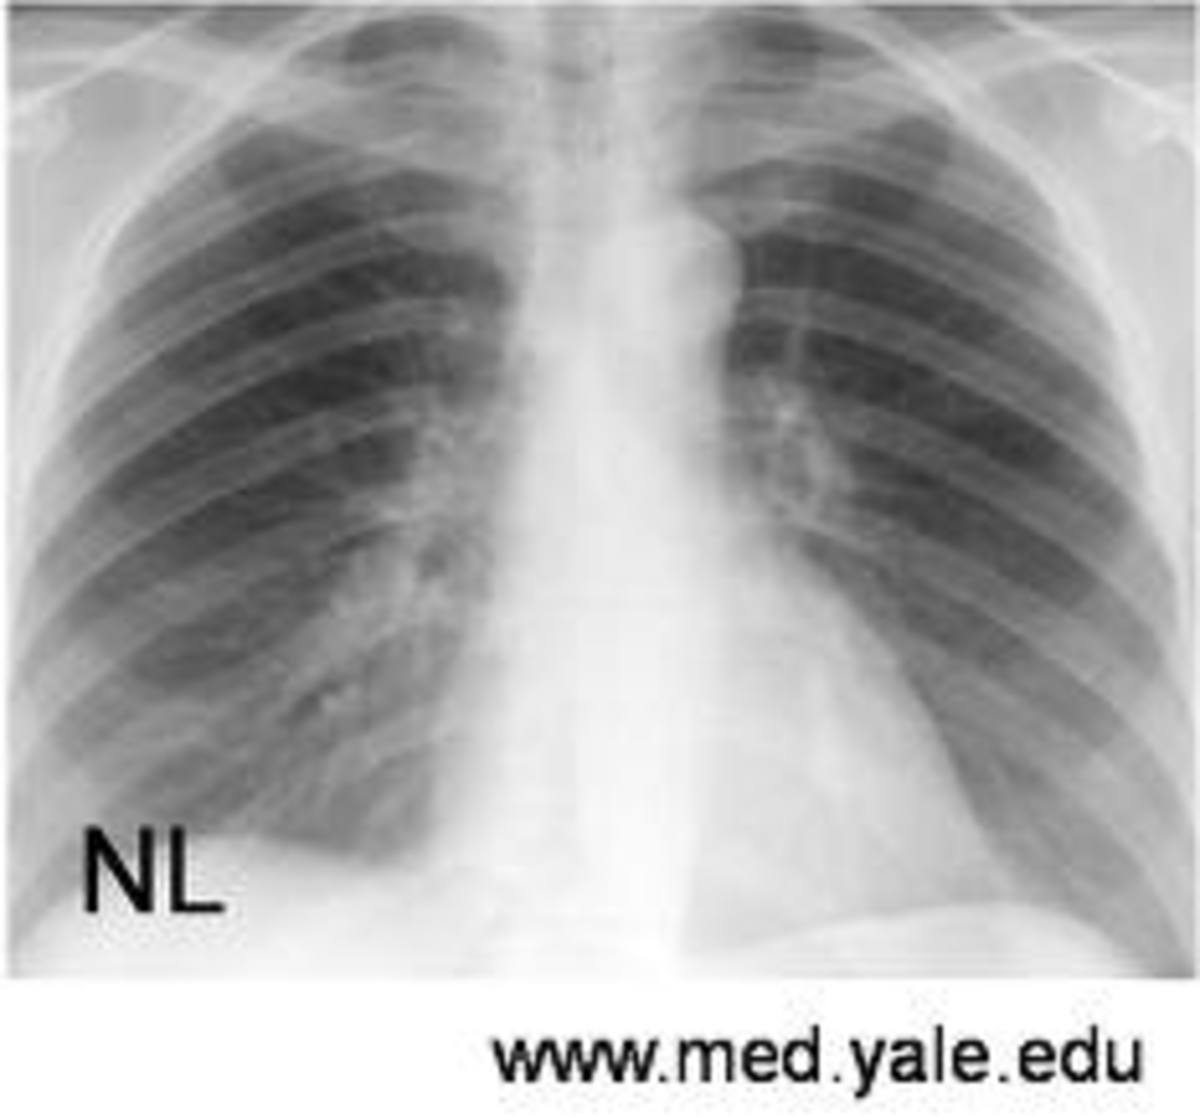 This is what a healthy, normal chest X-ray looks like. Compare it to the one above with emphysema. See the difference?